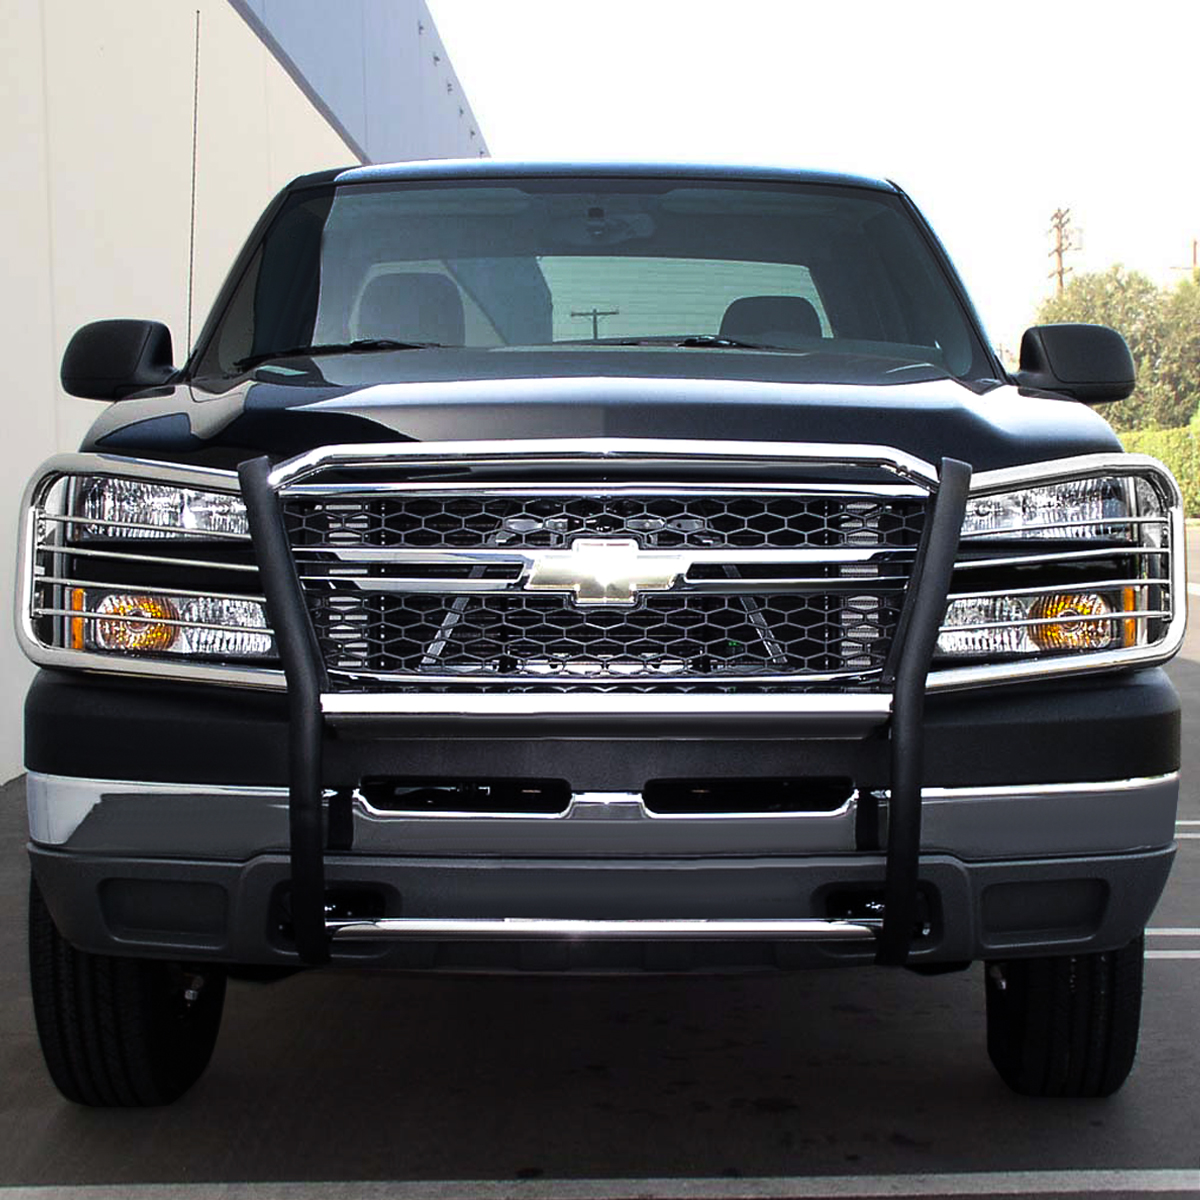 hight resolution of for 02 06 chevy avalanche with cladding front bumper protector brush grille guard chrome 03 04 05 walmart com